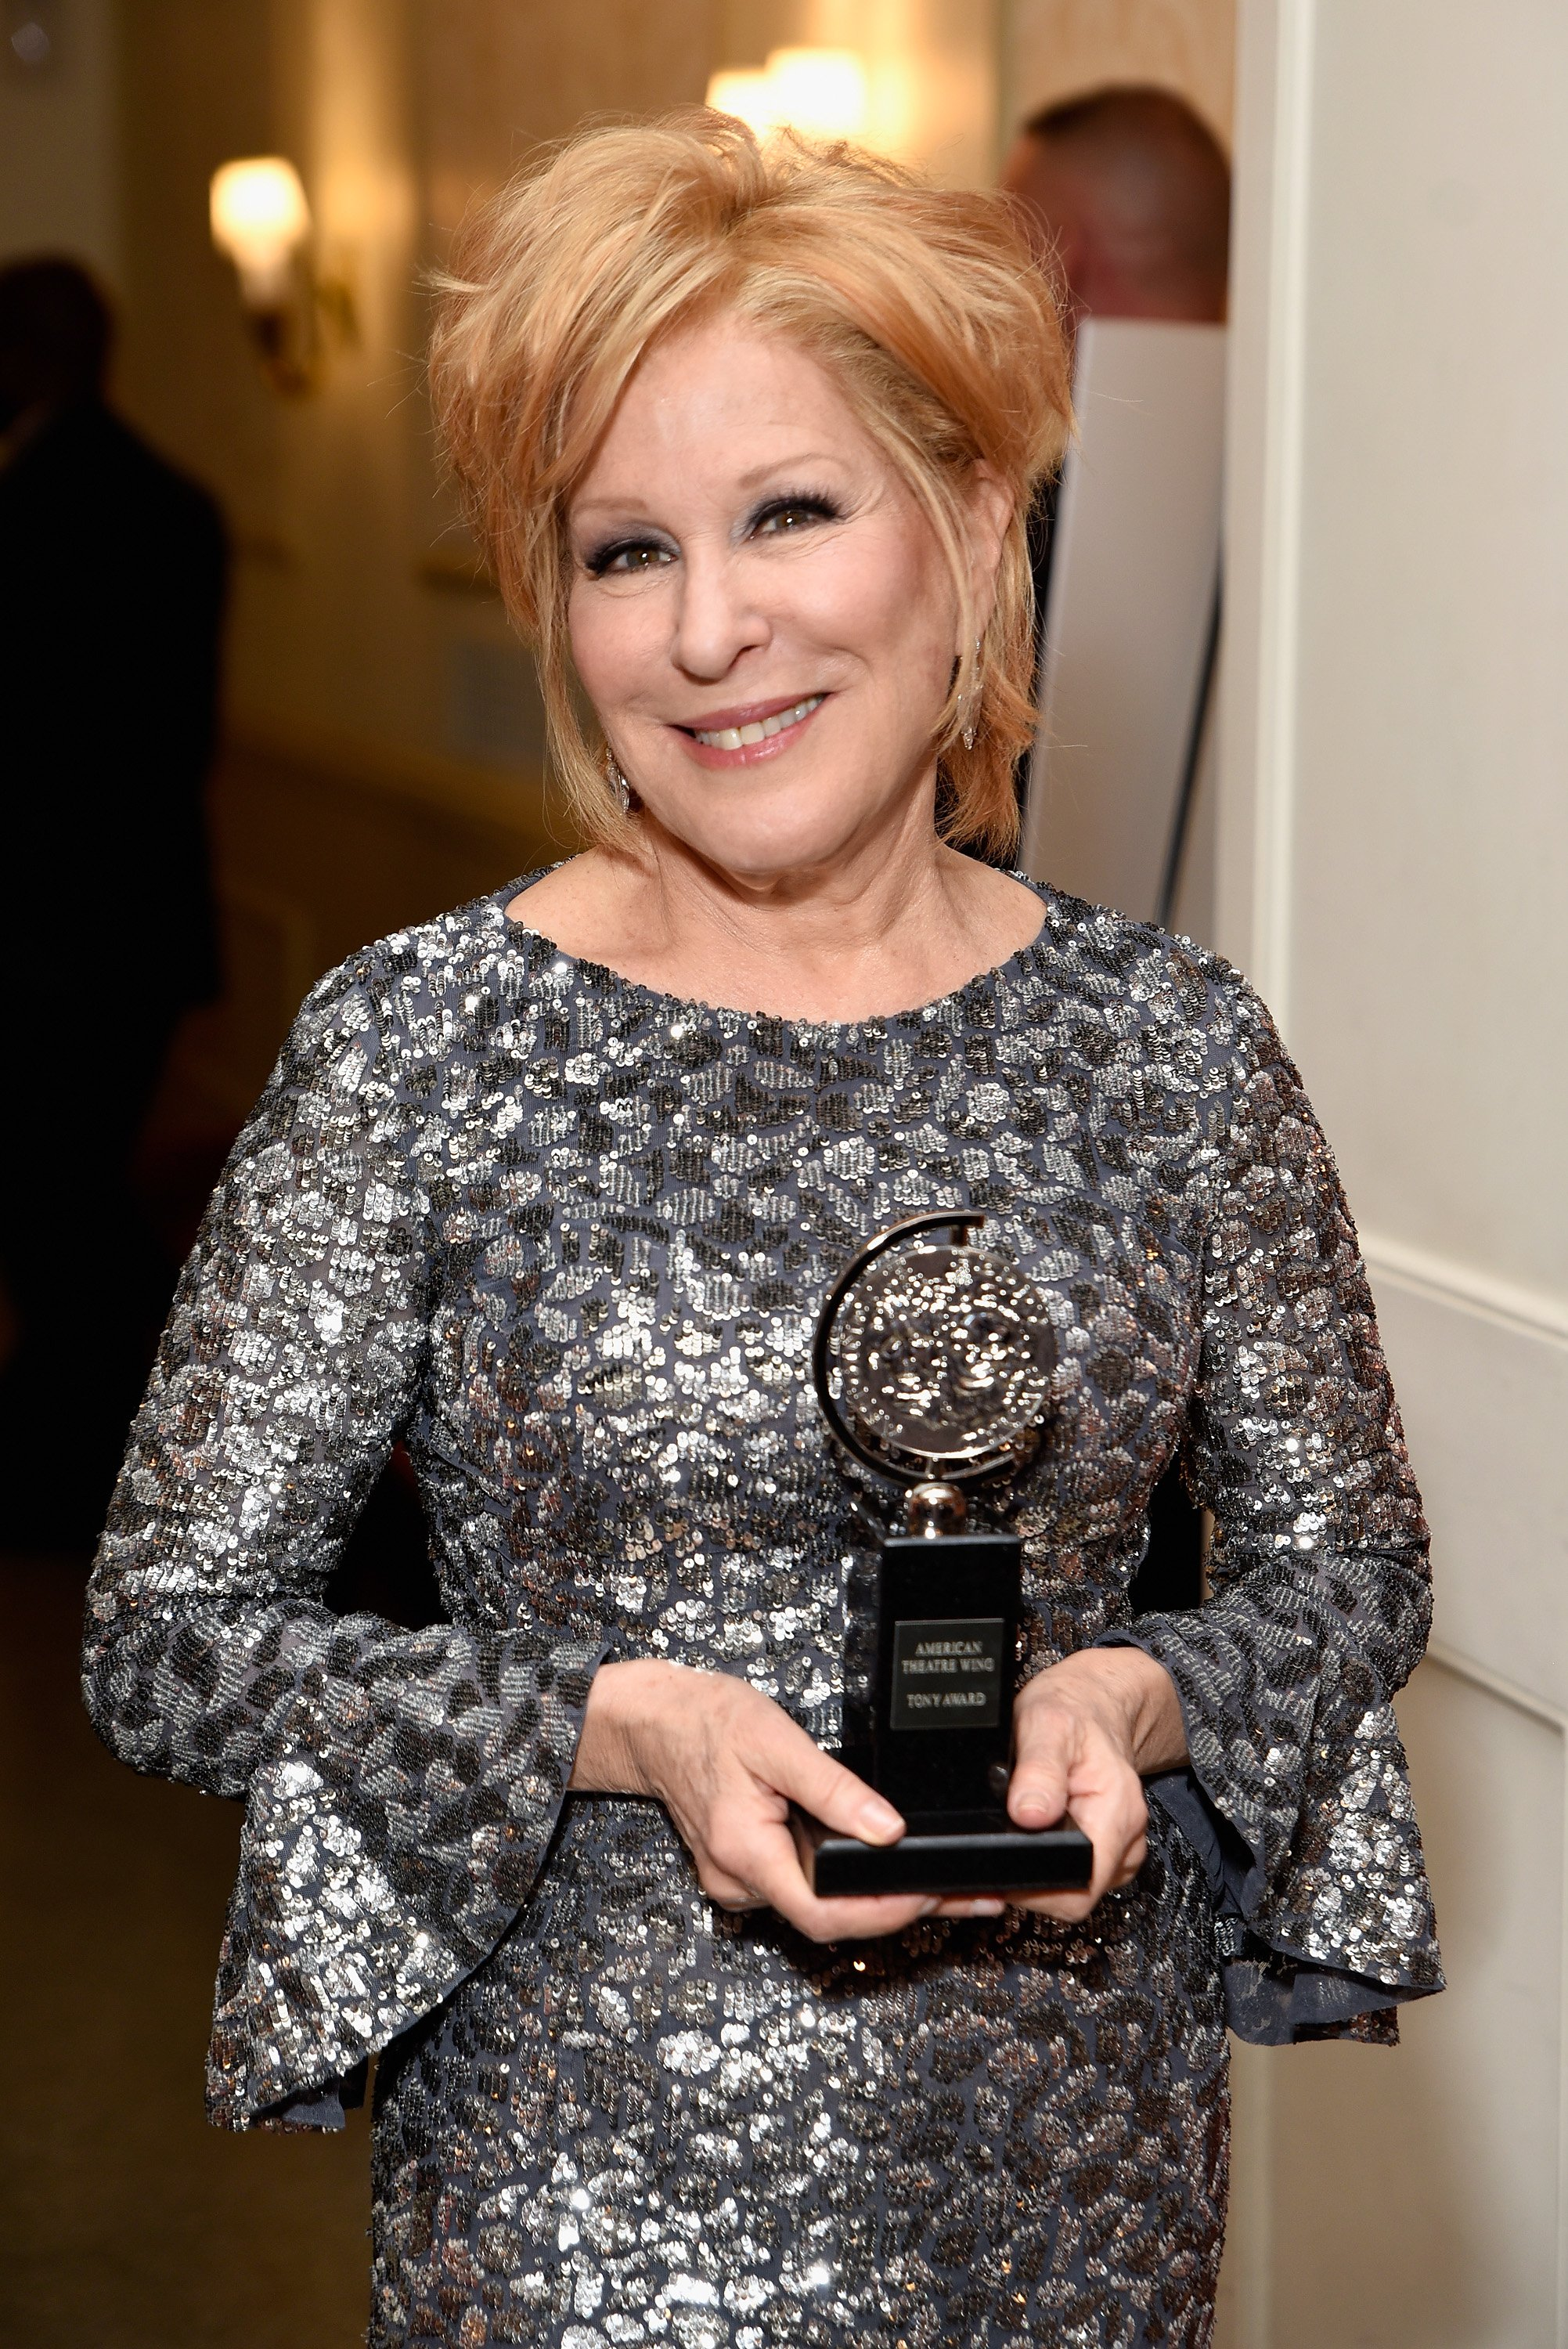 Bette Midler attend the 2017 Tony Awards on June 11, 2017. | Photo: Getty Images.